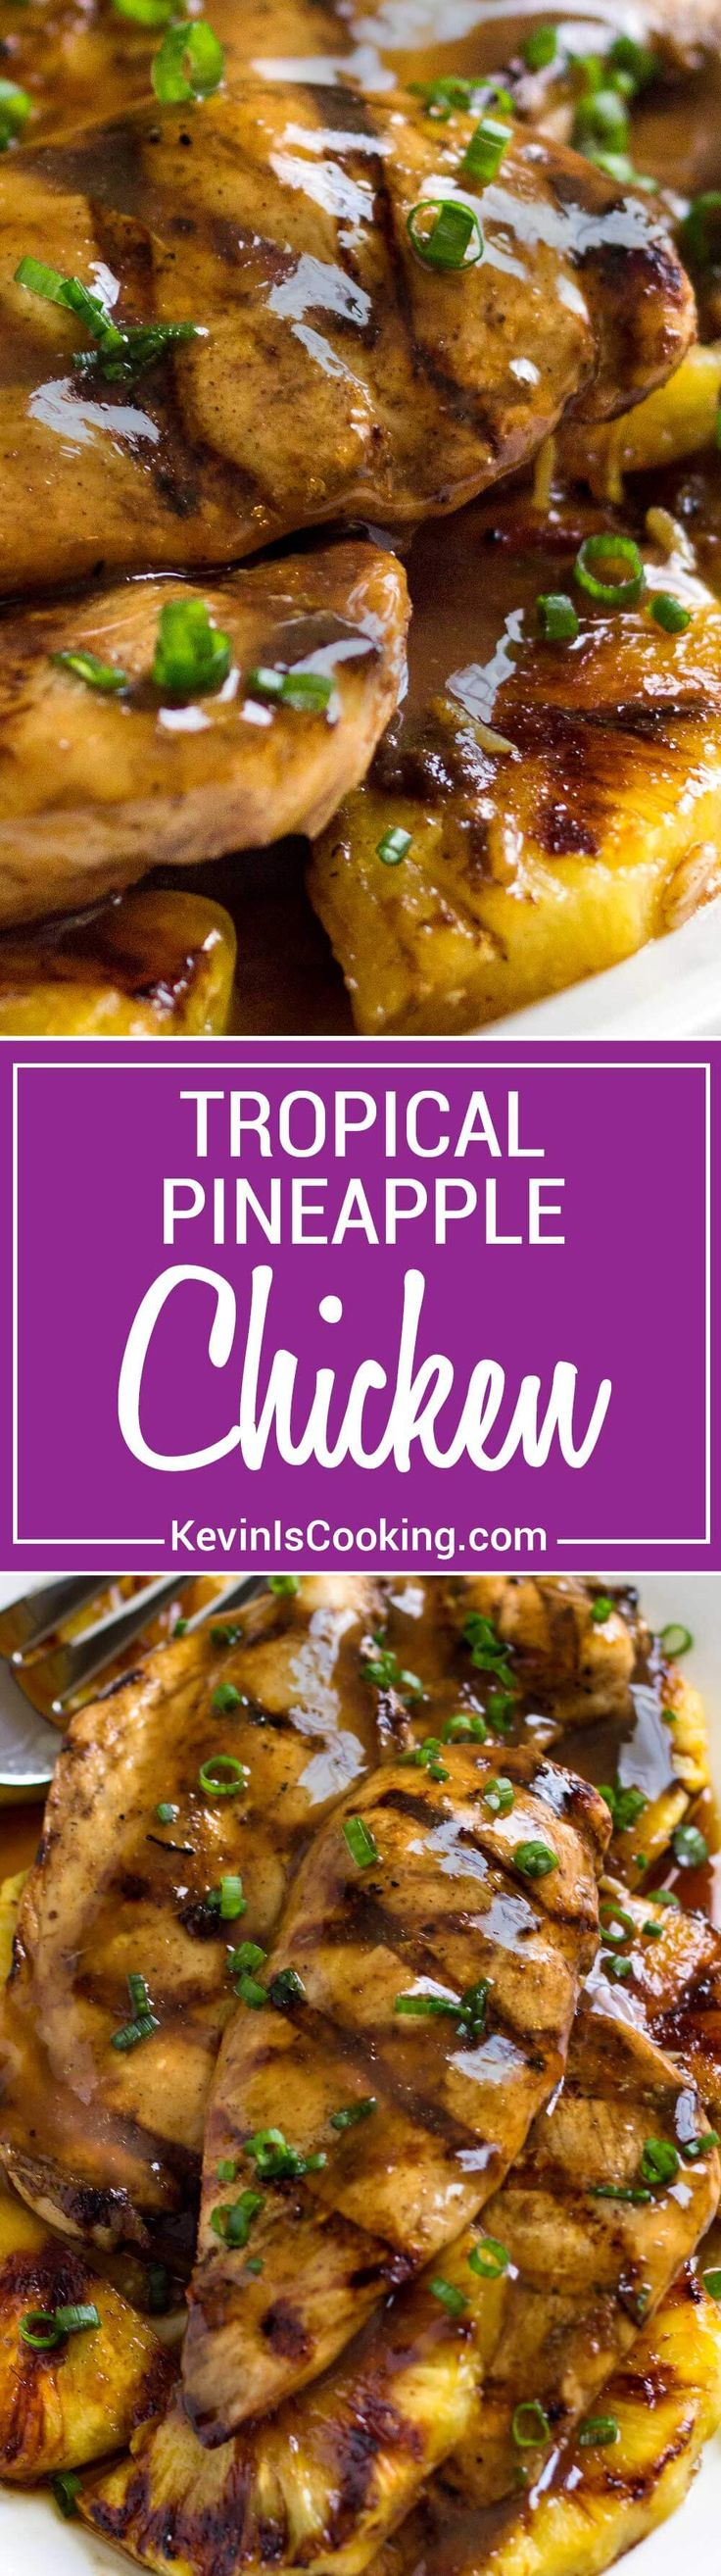 With Caribbean influences this Tropical Pineapple Chicken recipe uses a marinade turn glaze, reminiscent of a jerk sauce. Grilled or baked recipe versions!